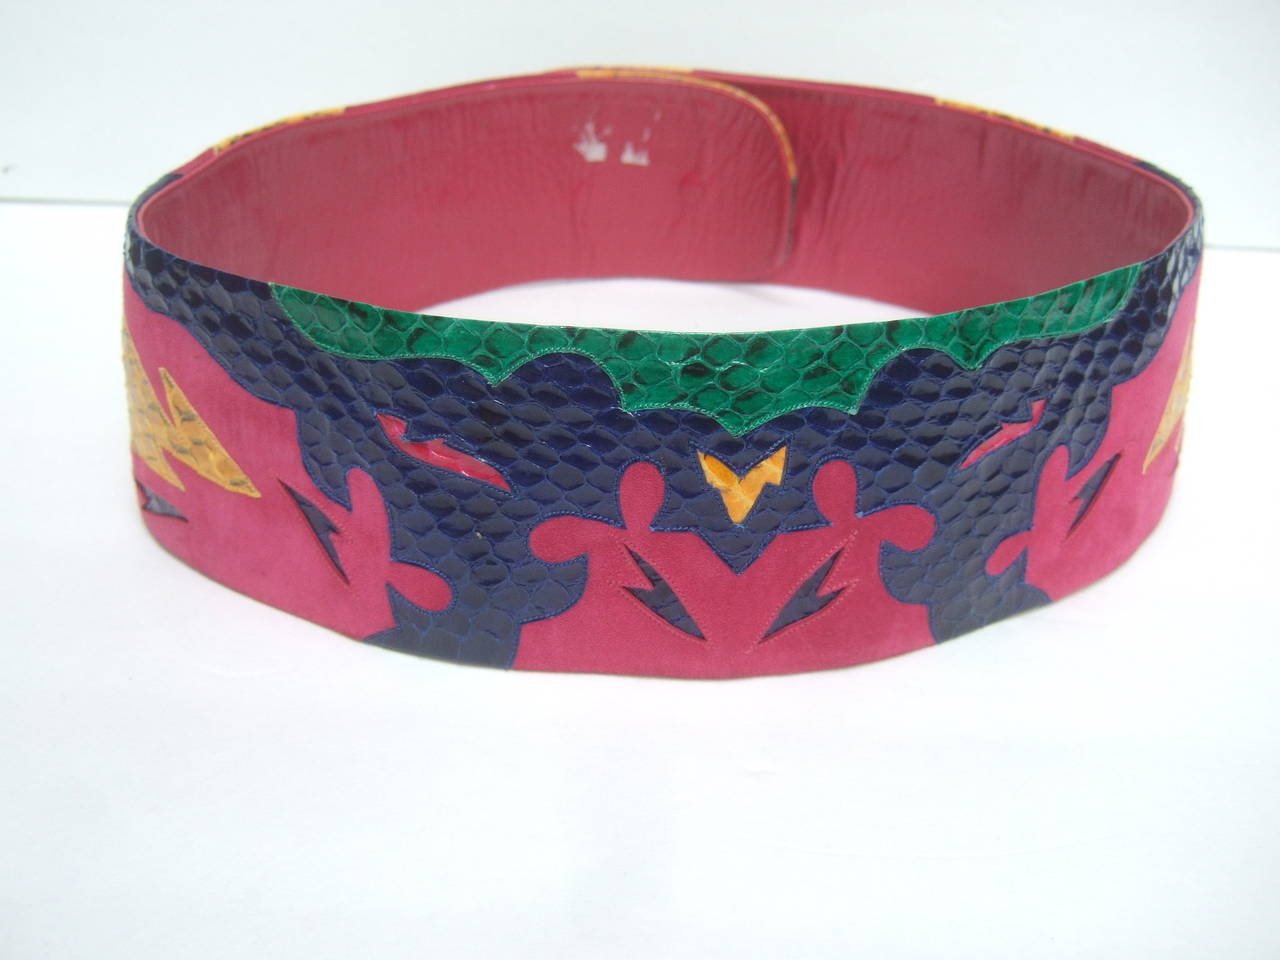 Women's Exotic Italian Wide Snakeskin Fuchsia Suede Belt c 1980s For Sale